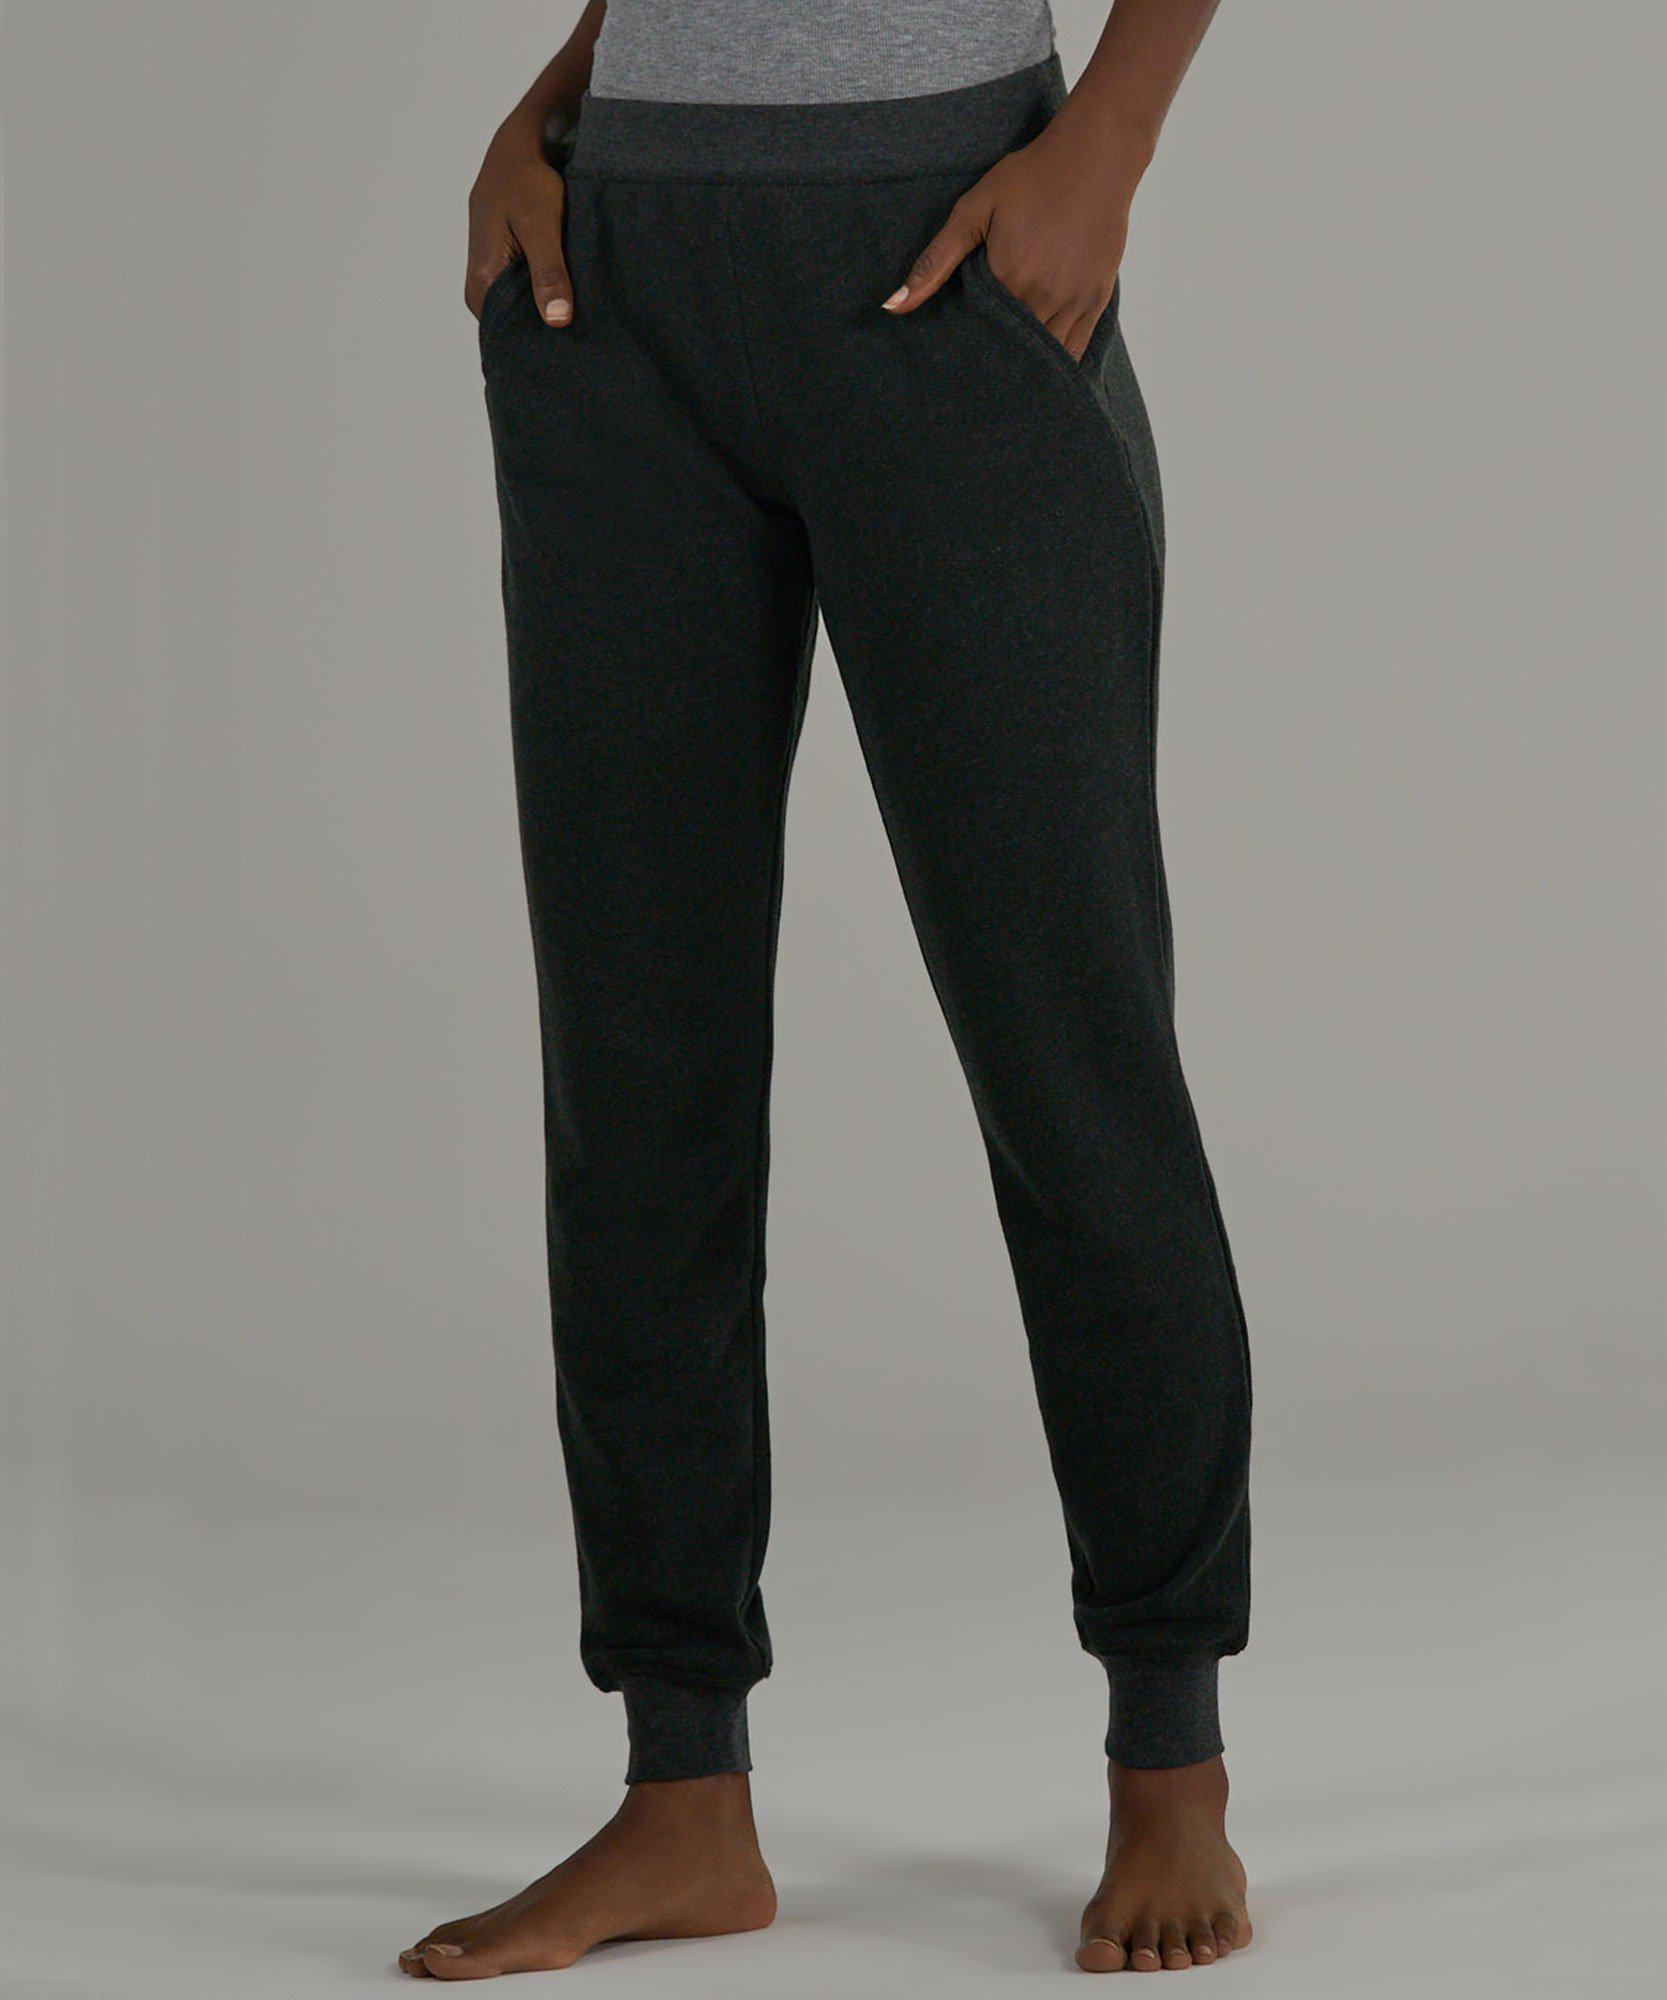 French Terry Sweatpants - Heather Charcoal